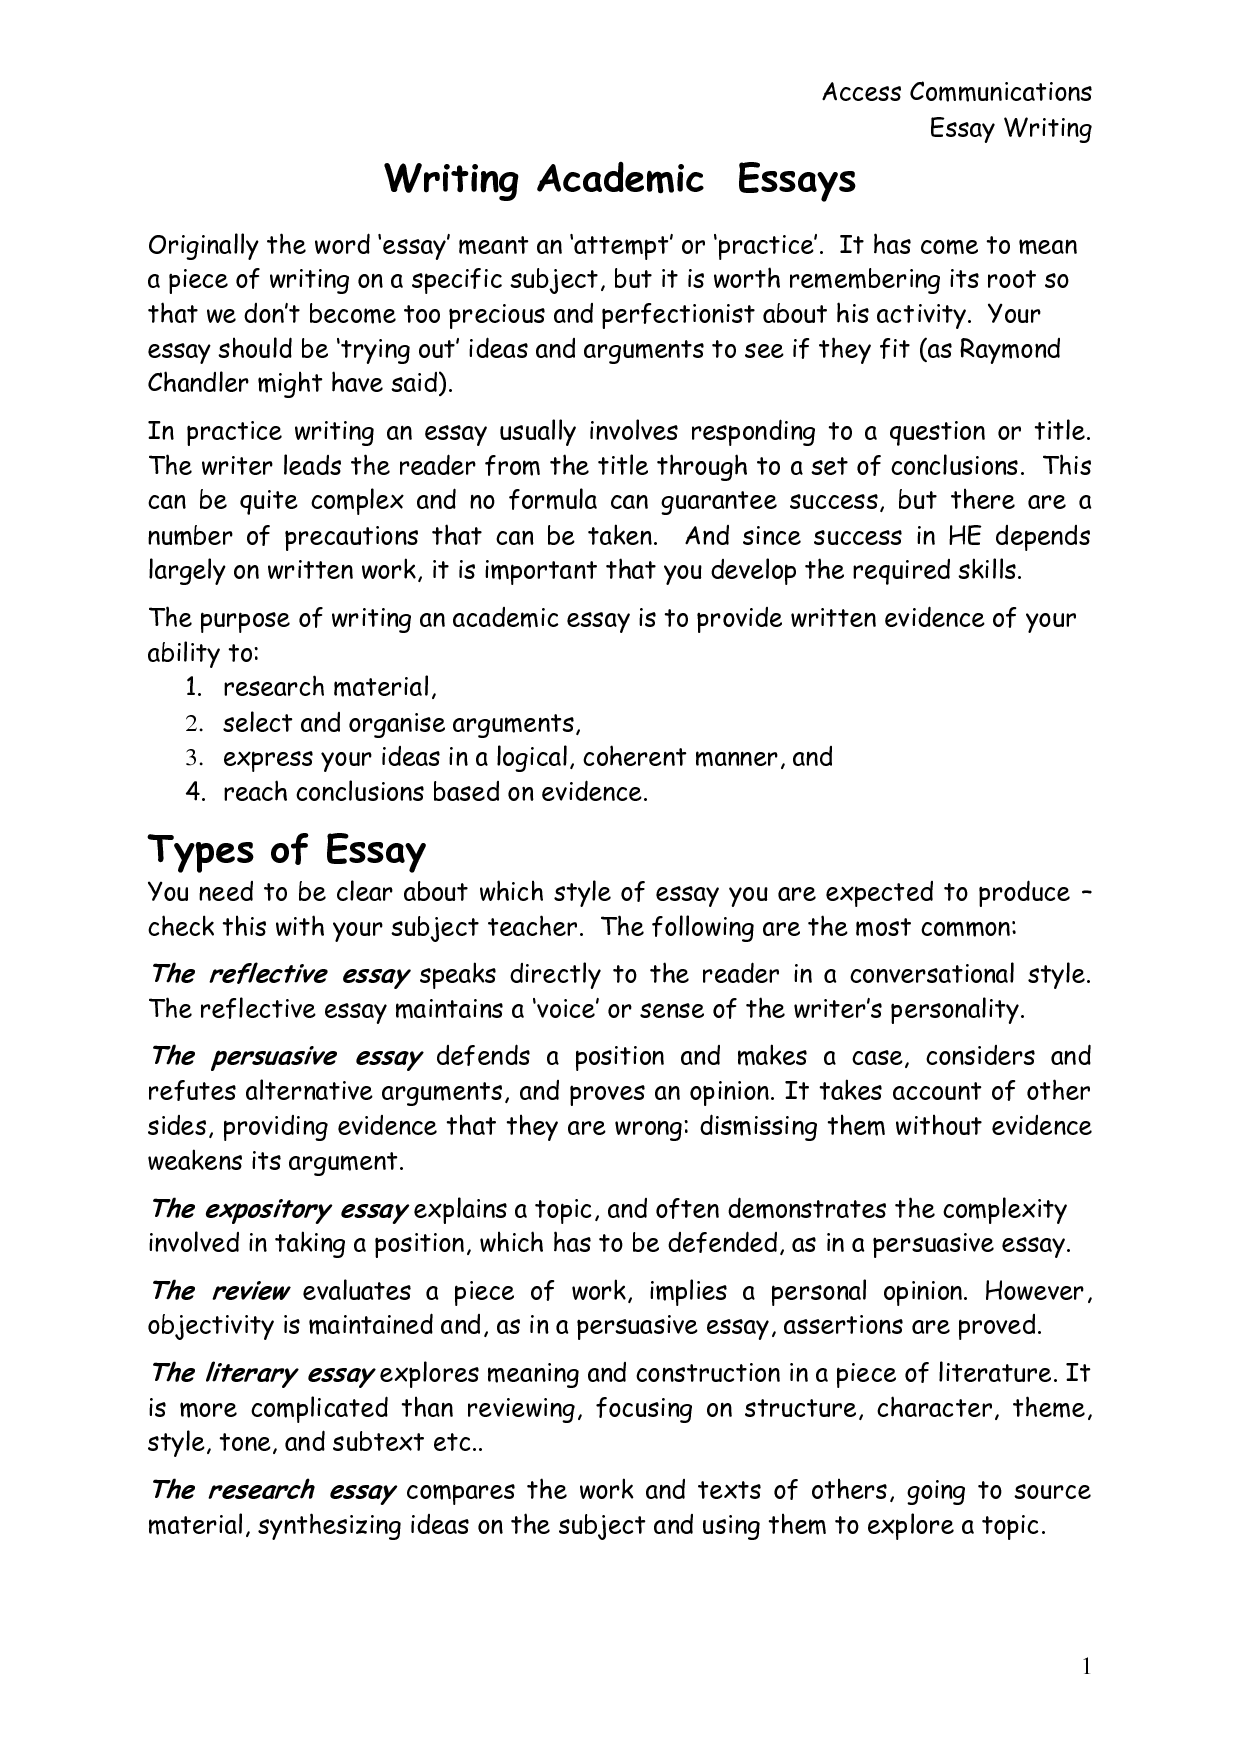 016 Reflective Essay On Academic Writings Beautiful Examples Advanced Higher English Writing Example Pdf About Life Full